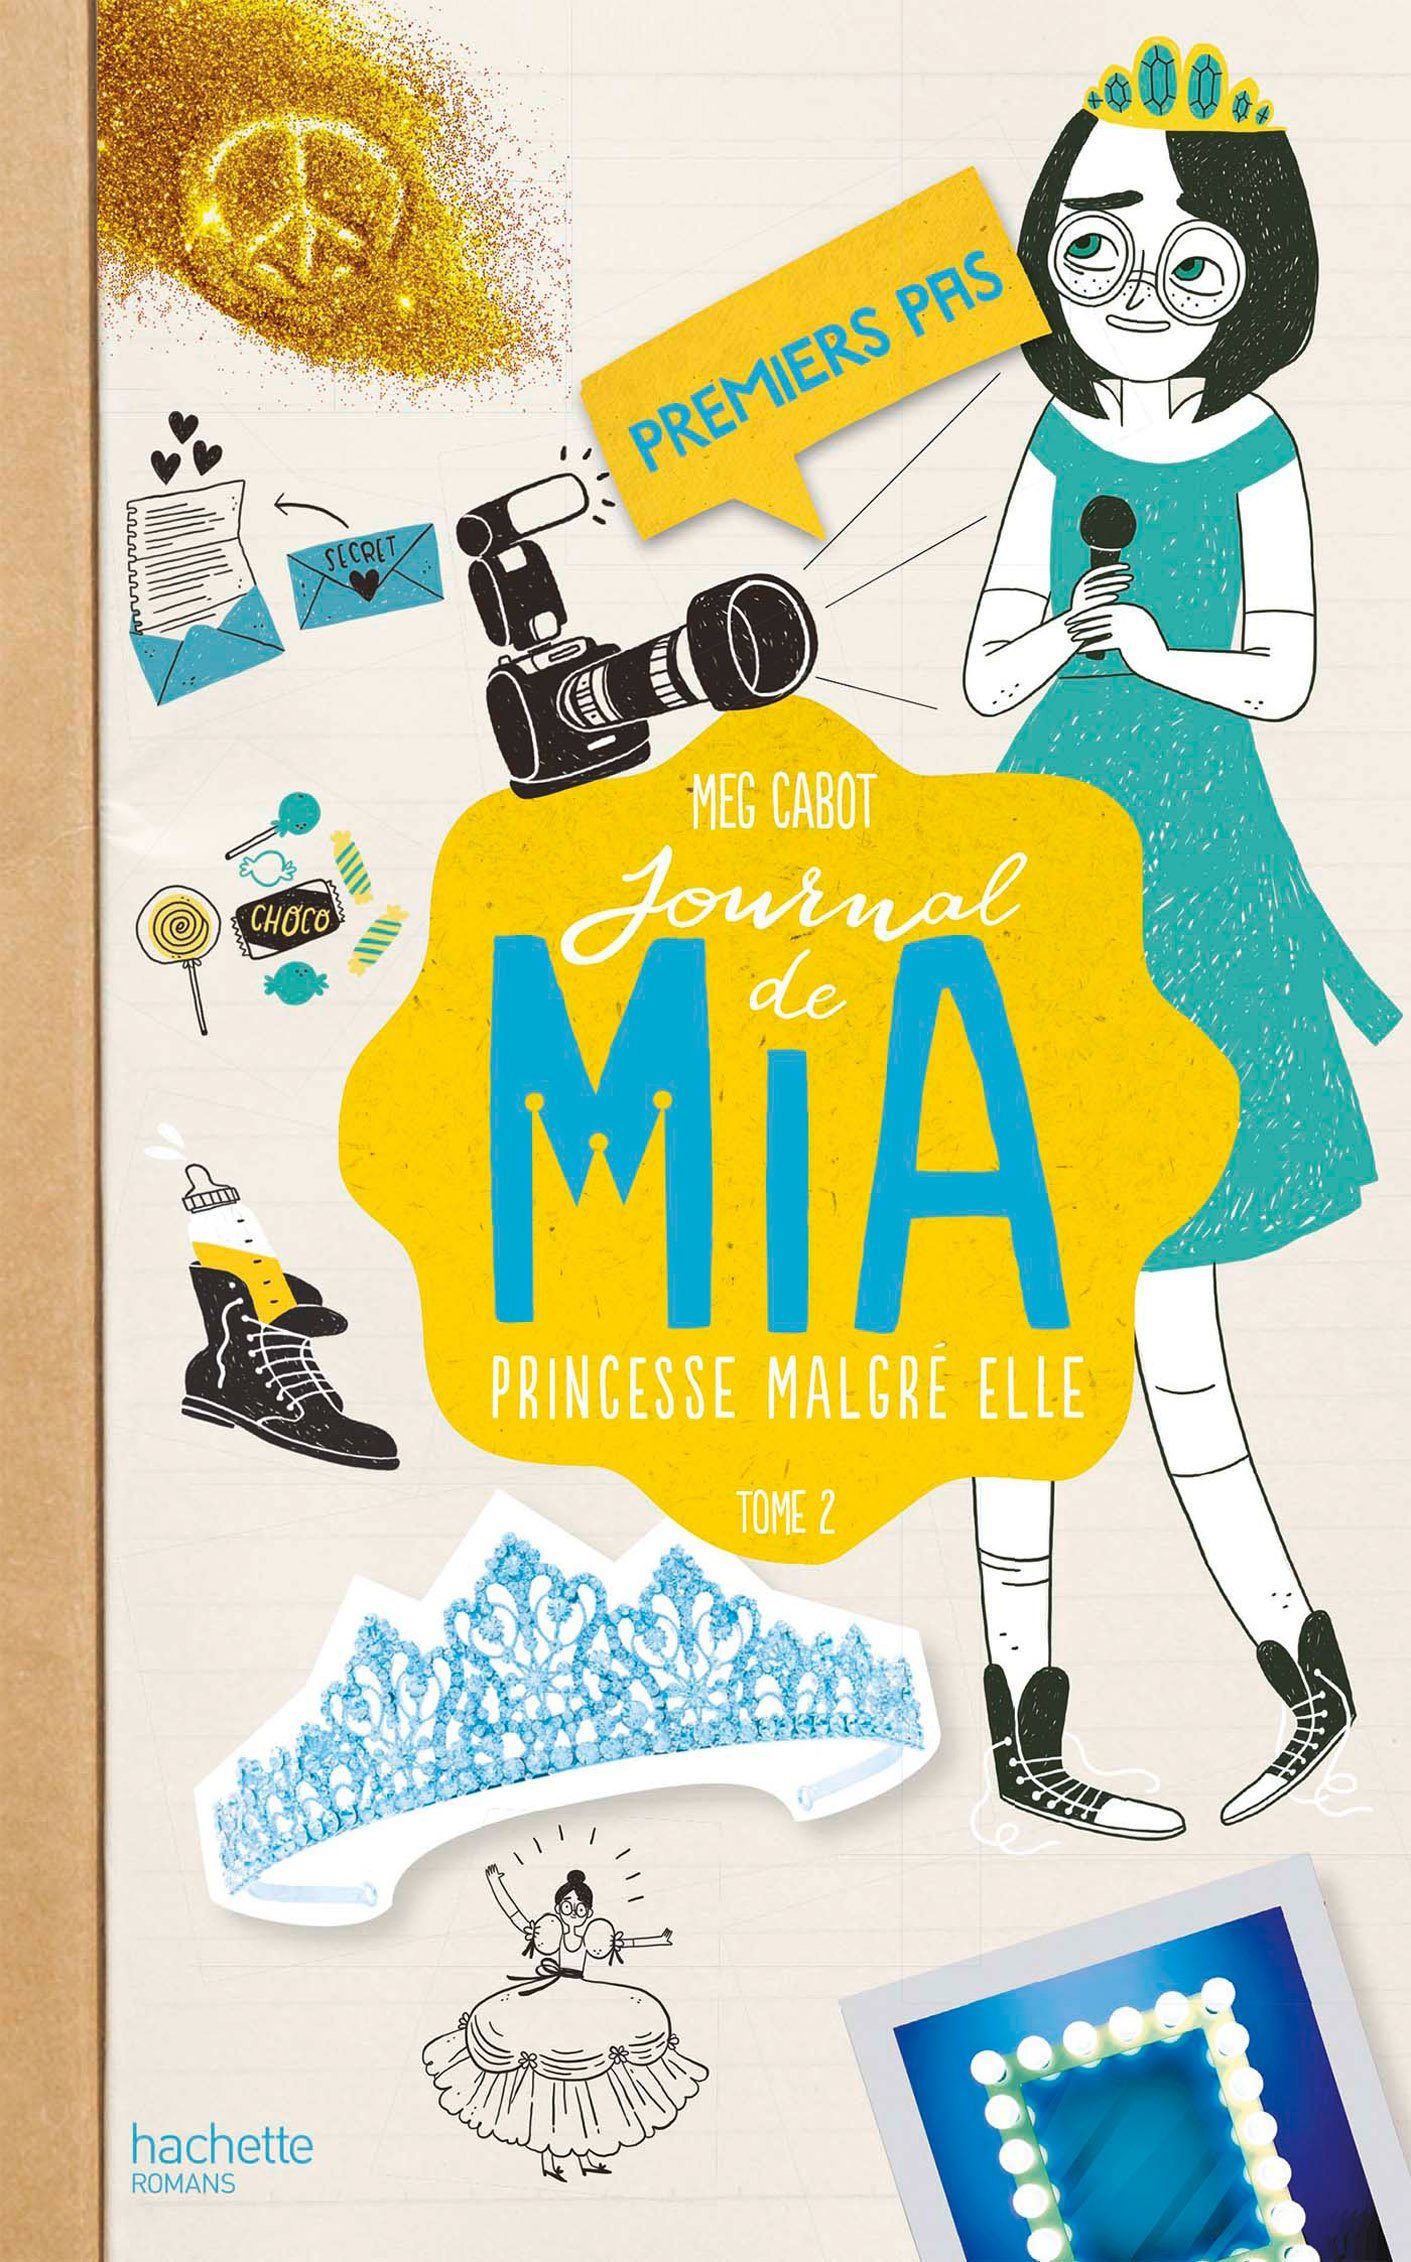 Couverture : Meg Cabot Journal de Mia